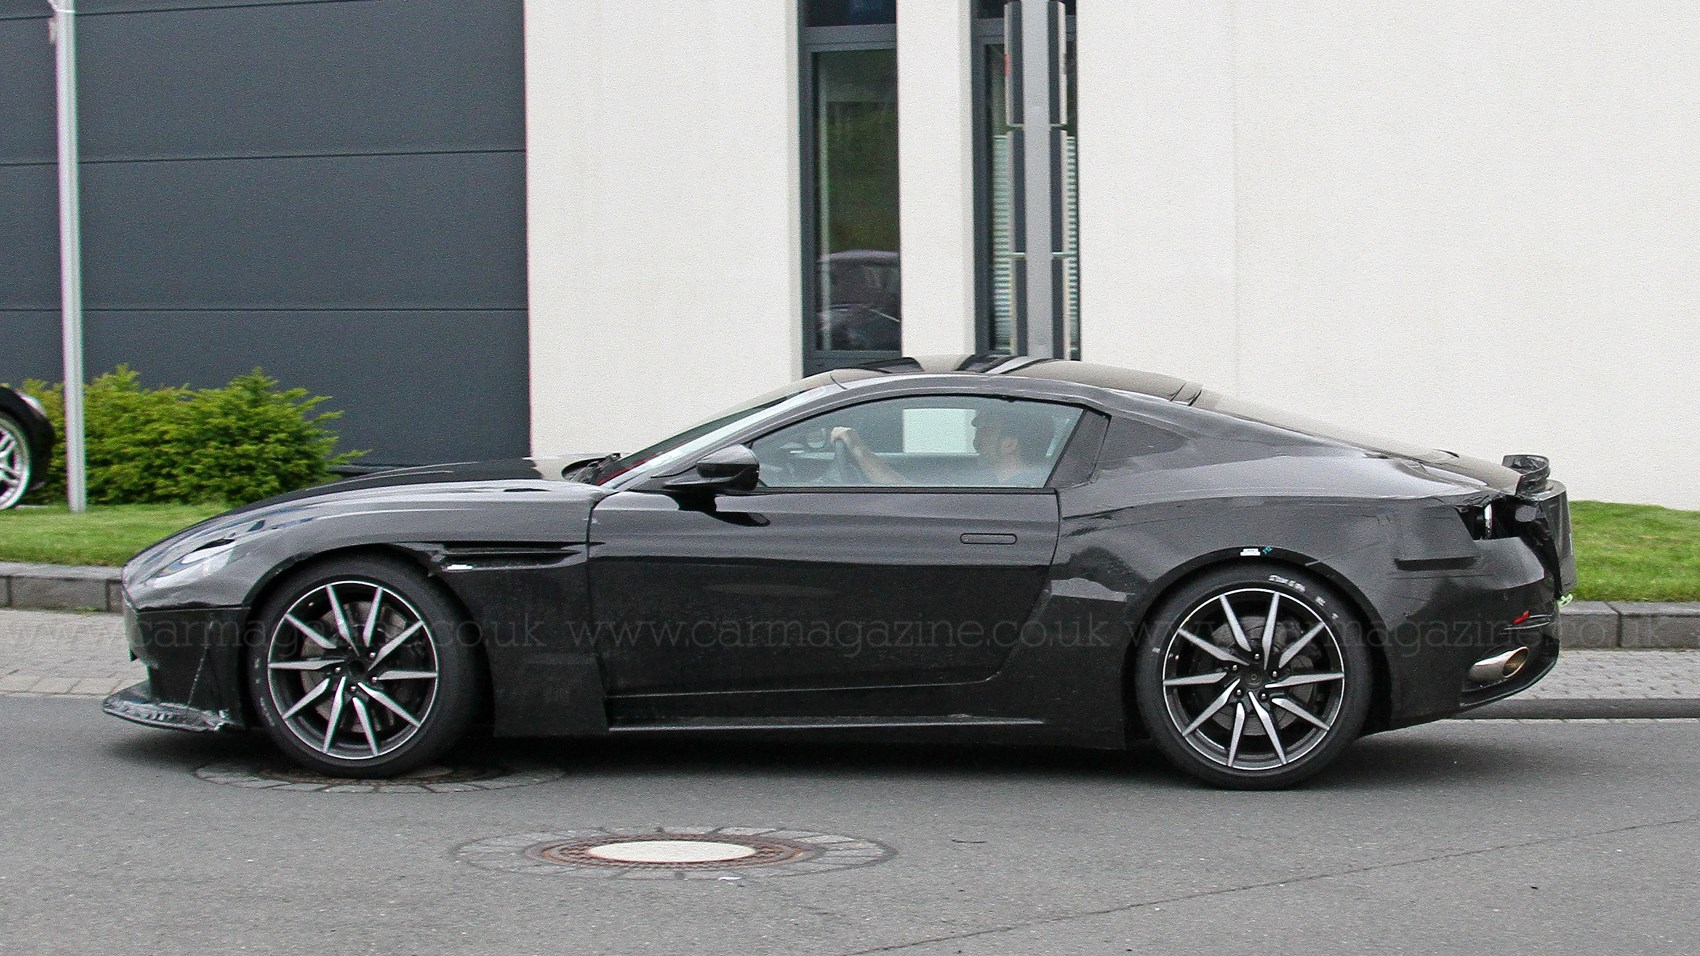 New 2018 Aston Martin Vantage Pics Specs Prices Car